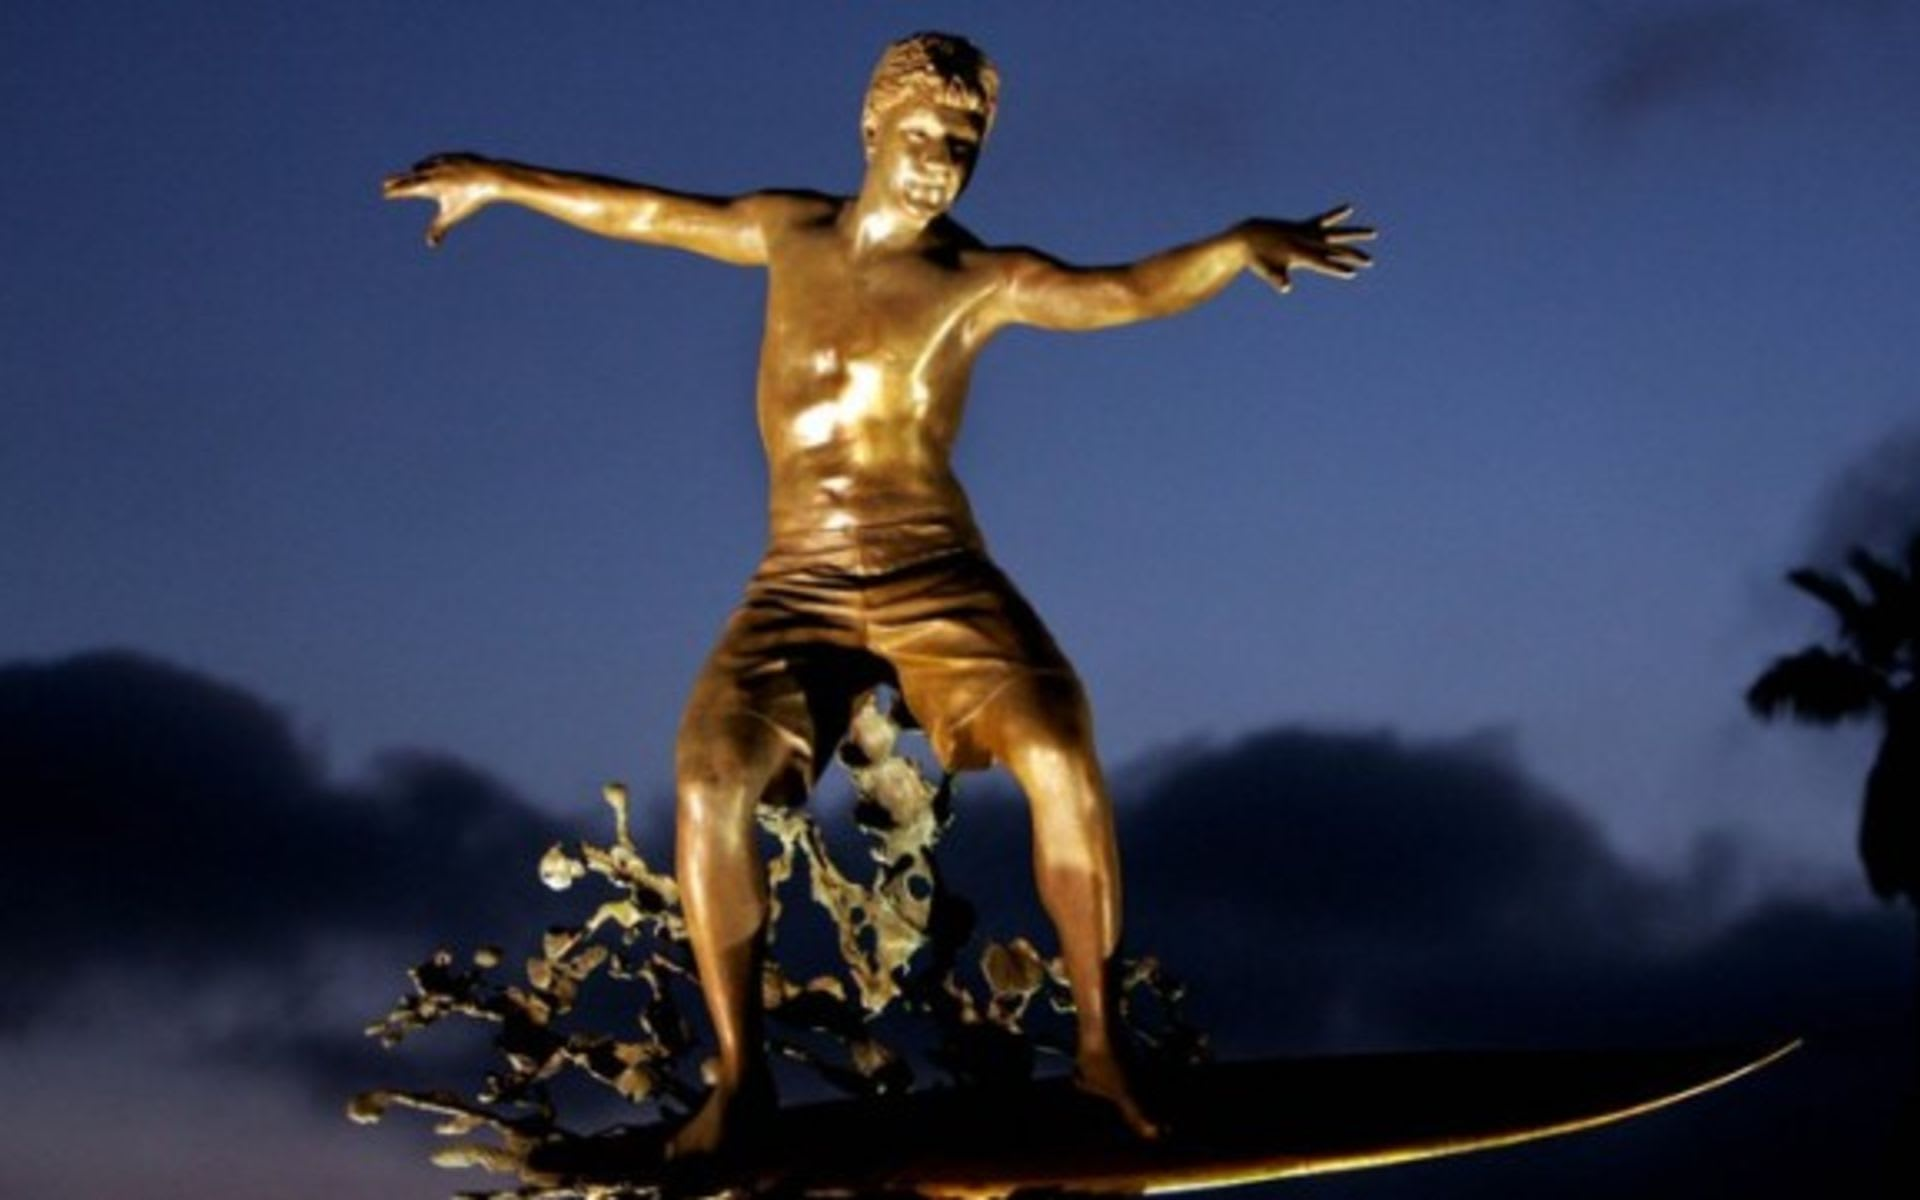 Surfer Statue in Cardiff by the Sea   Cardiff Kook